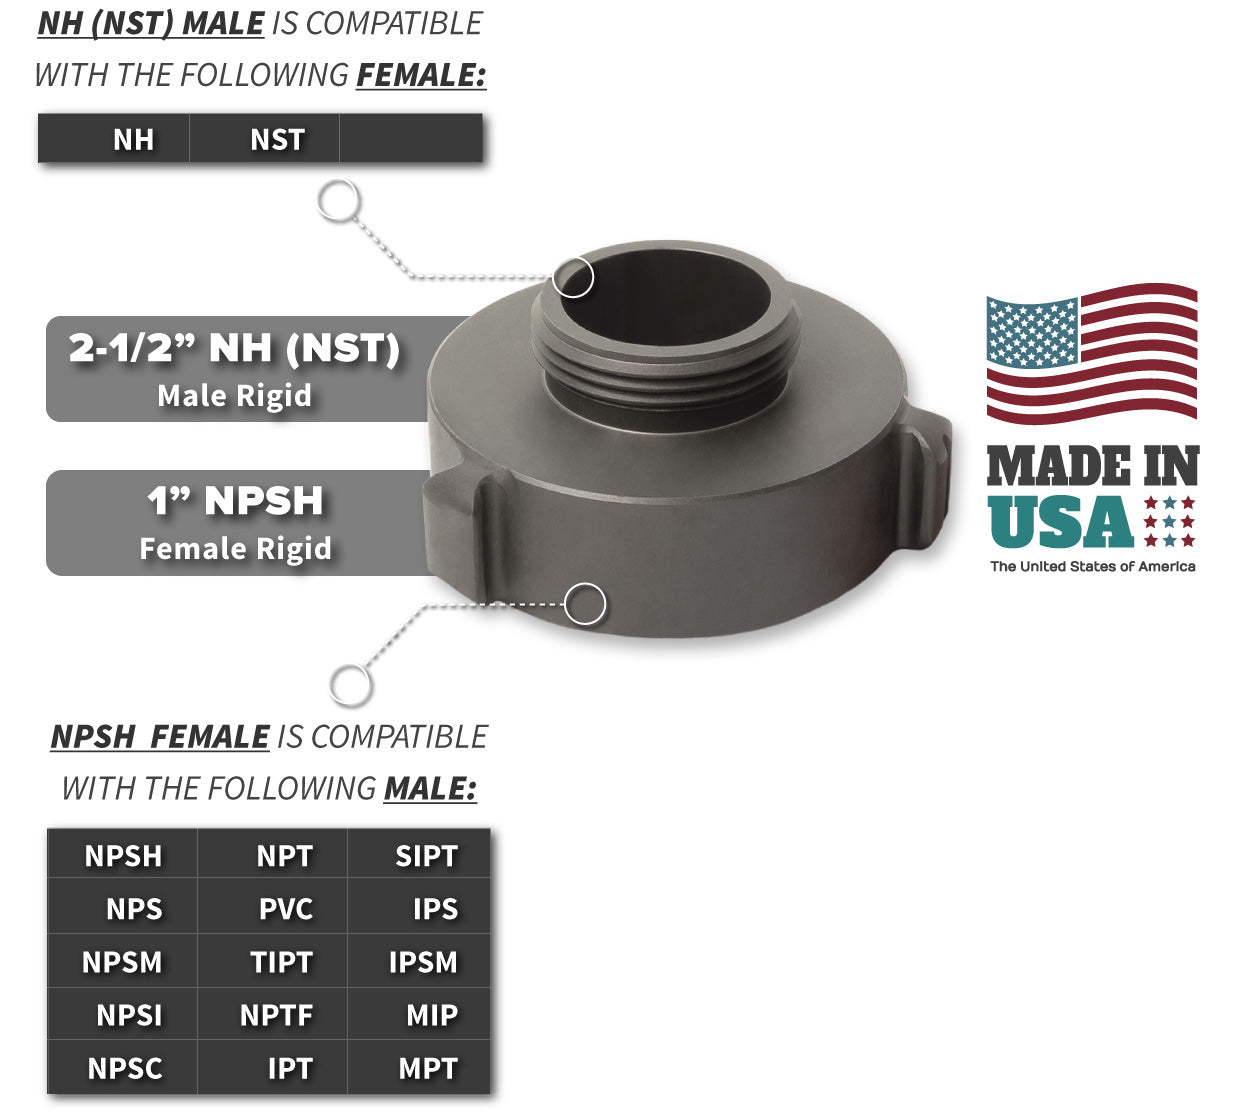 1 Inch NPSH Female x 2.5 Inch NH-NST Male Compatibility Thread Chart